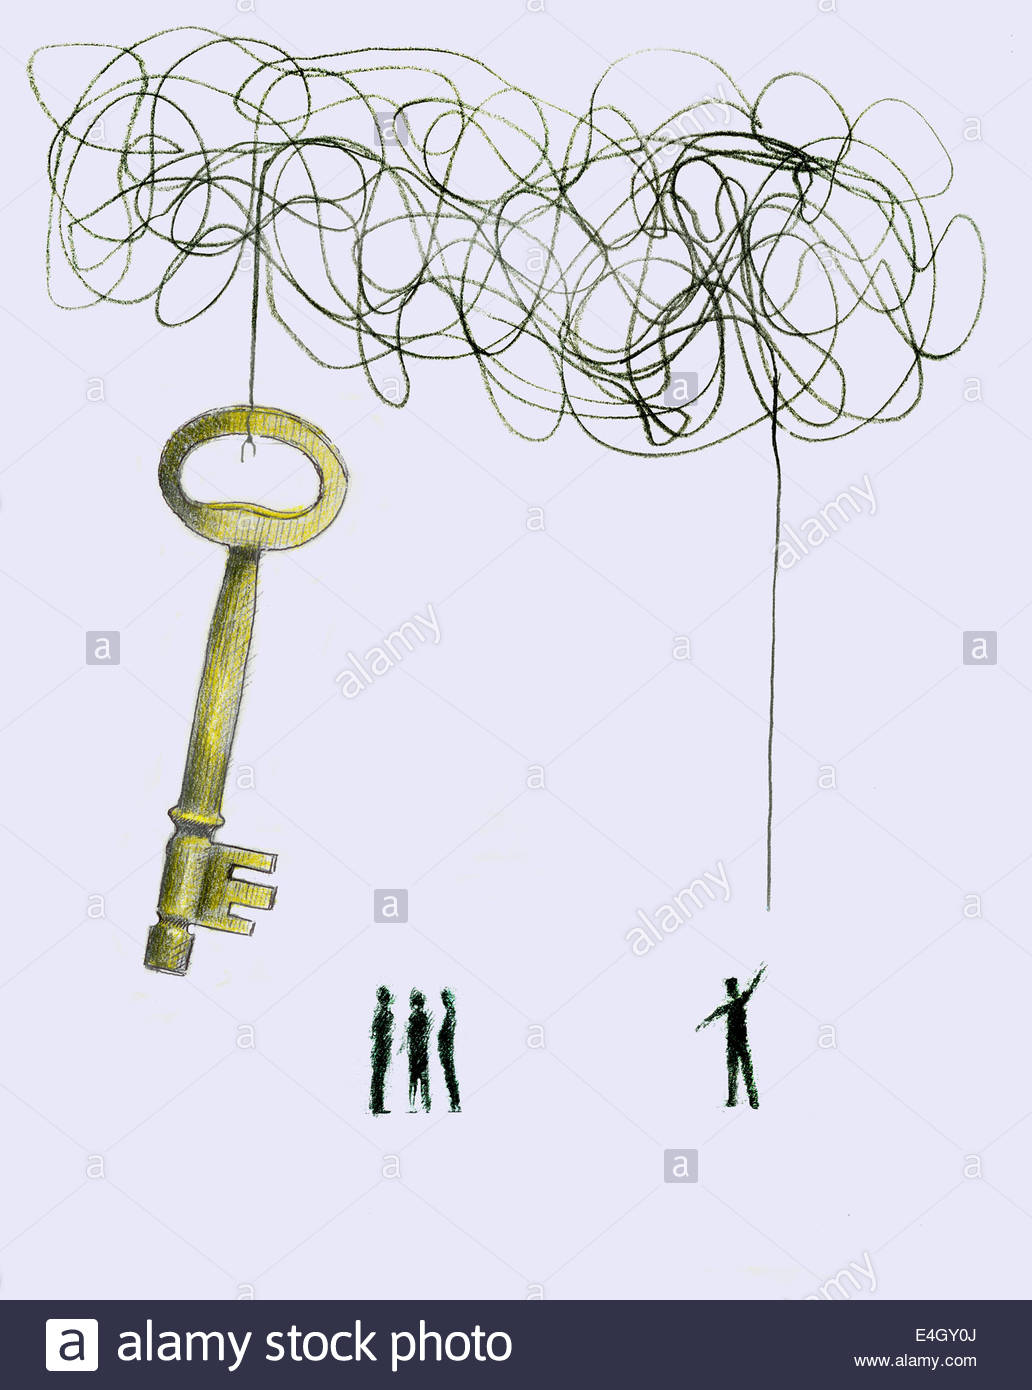 Man discovering end of tangled string attached to large key - Stock Image